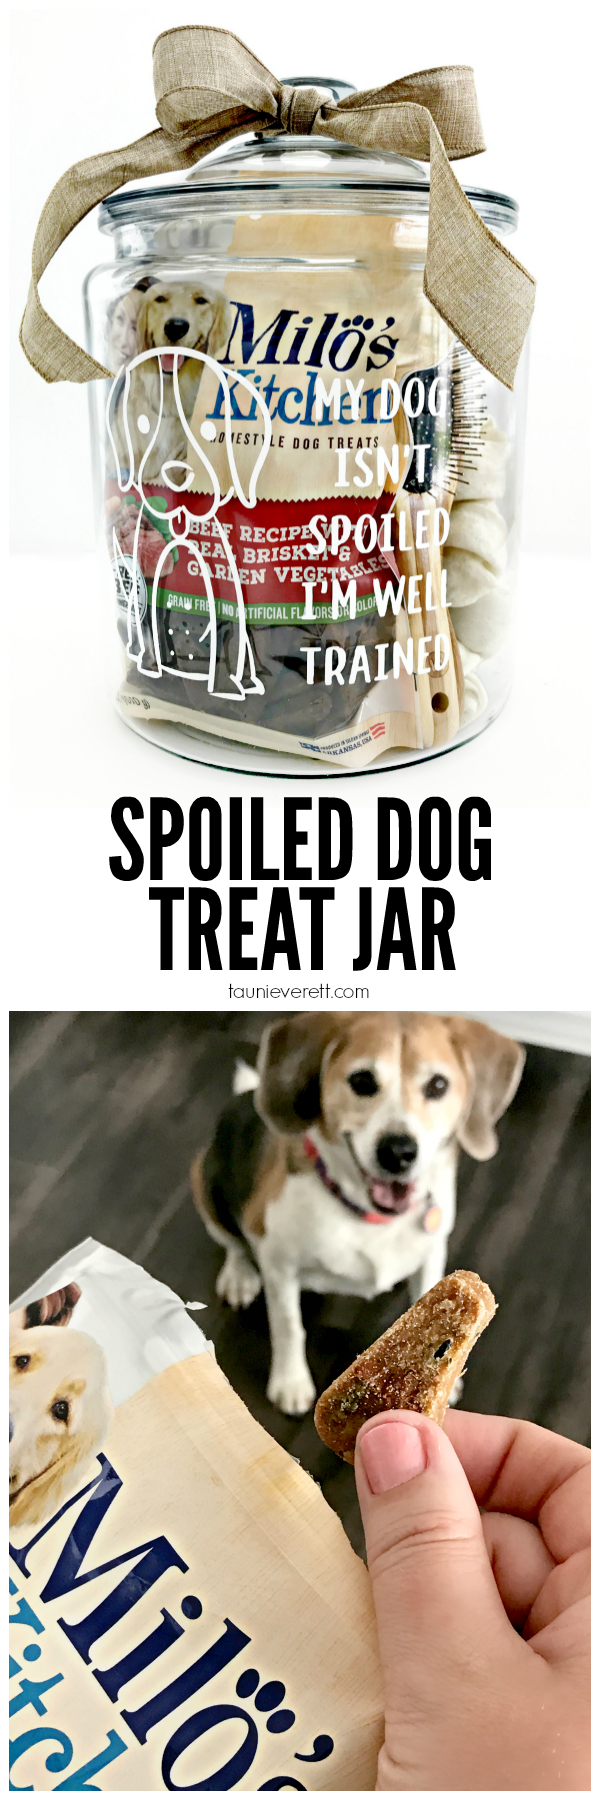 DIY Spoiled Dog Treat Jars with two FREE cut files #silhouette #cricut #cutfiles #dog #dogtreat